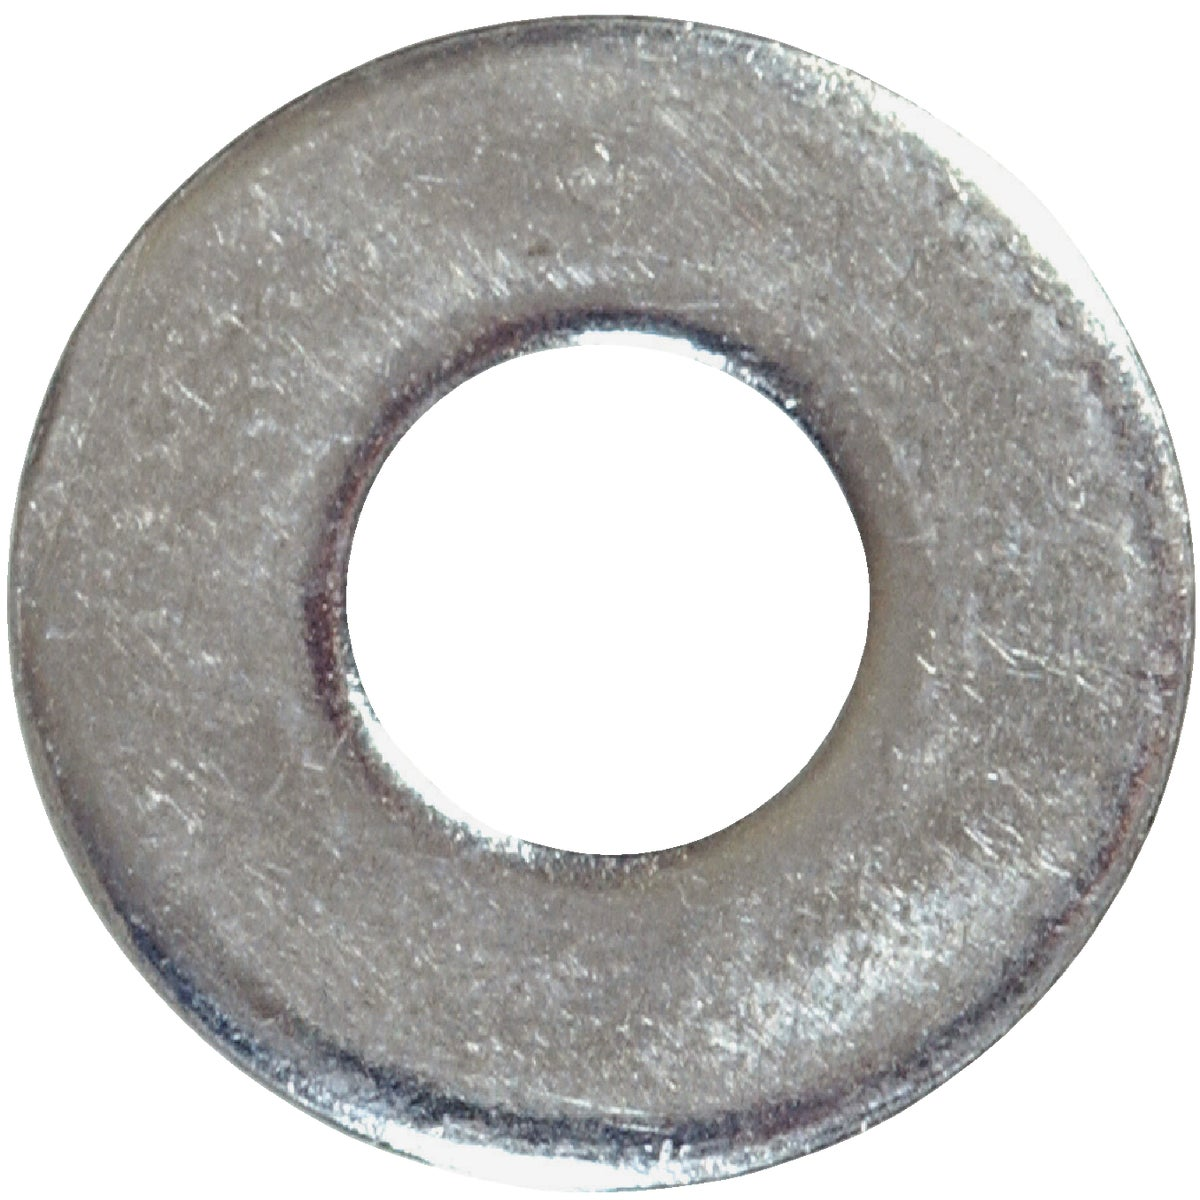 "5LB 7/8"" USS FLT WASHER - 270030 by Hillman Fastener"